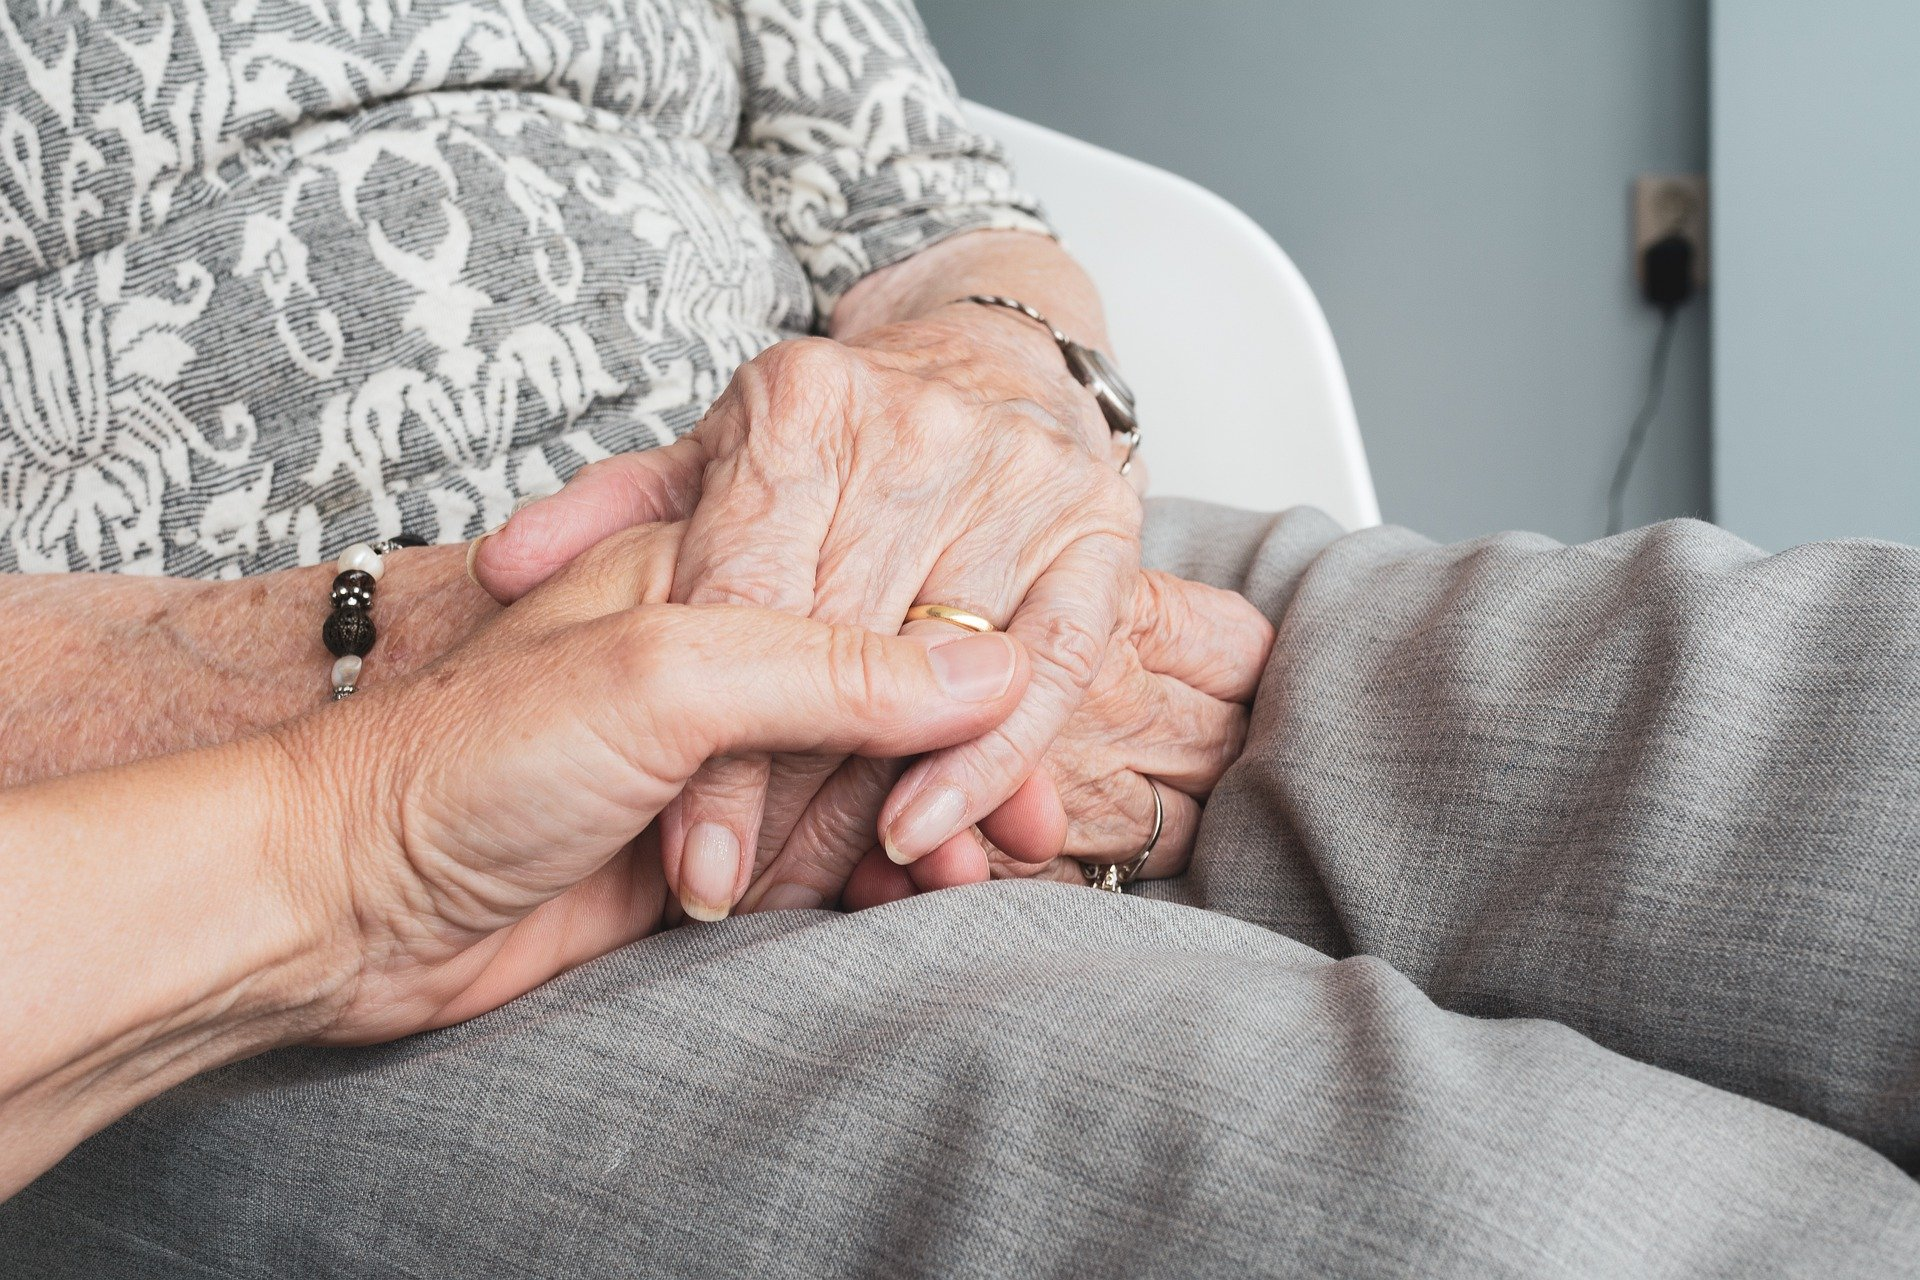 3 Resources for End of Life Conversations